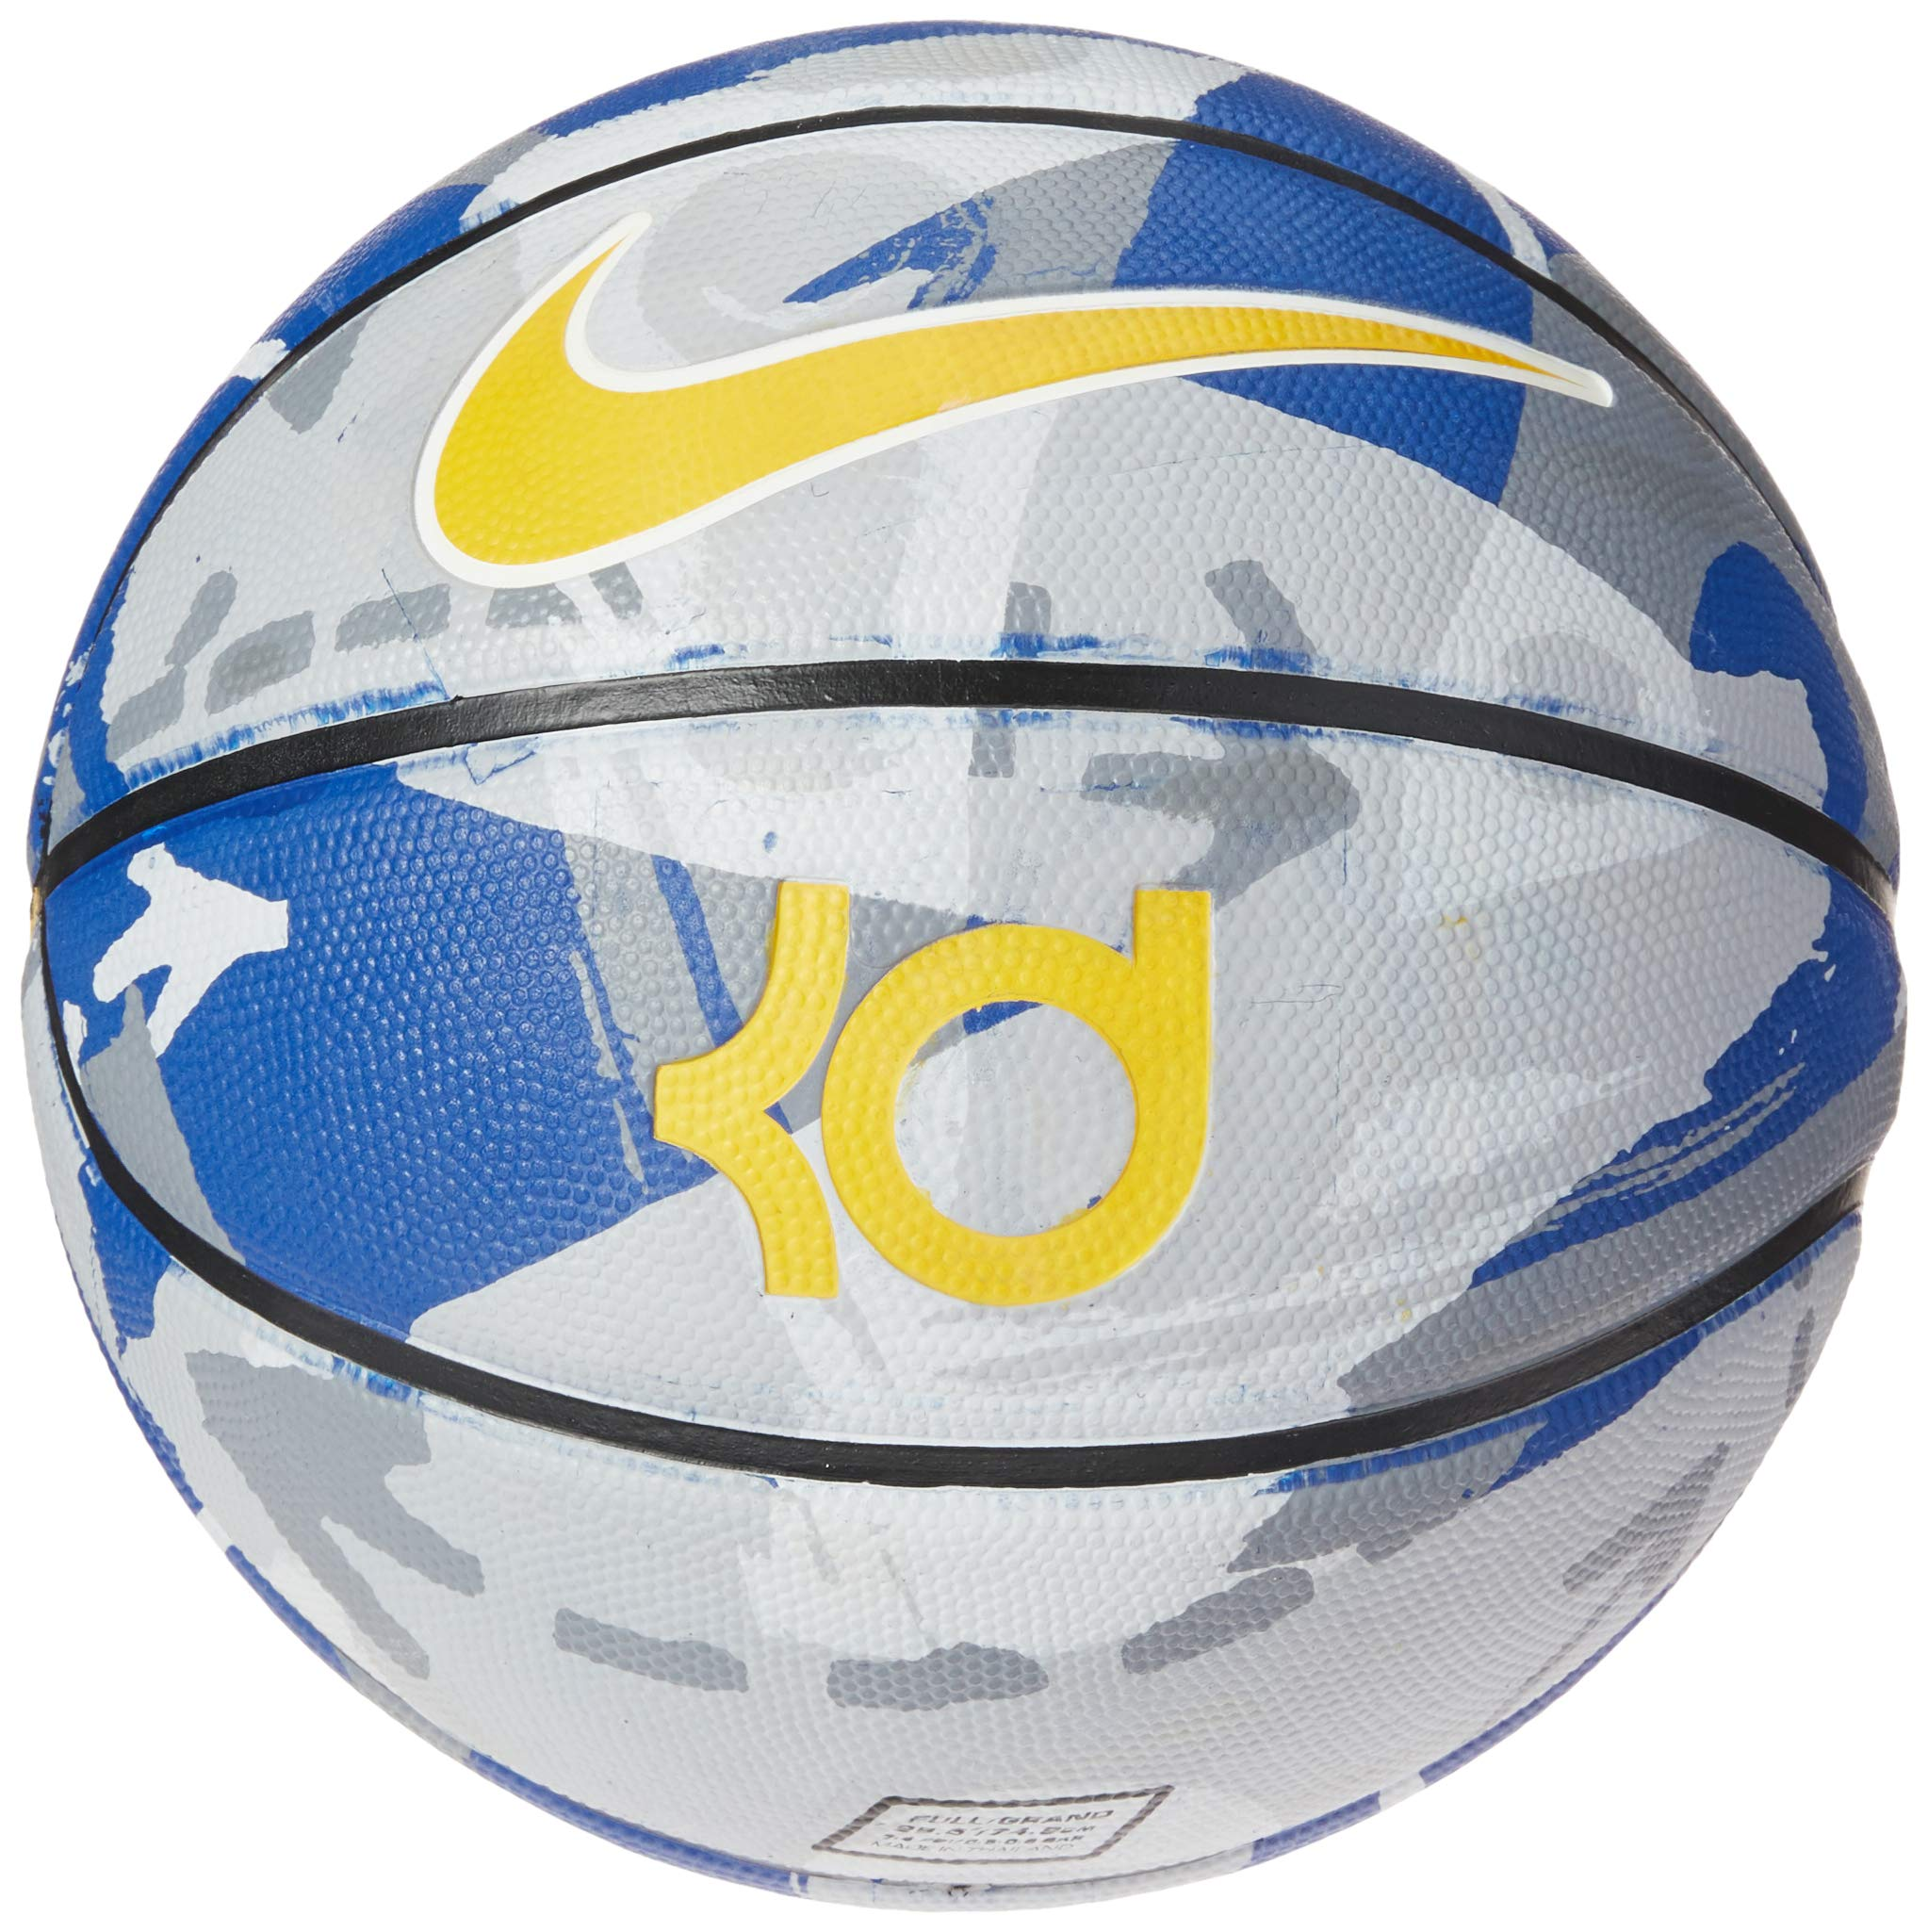 Nike KD Playground Official Basketball